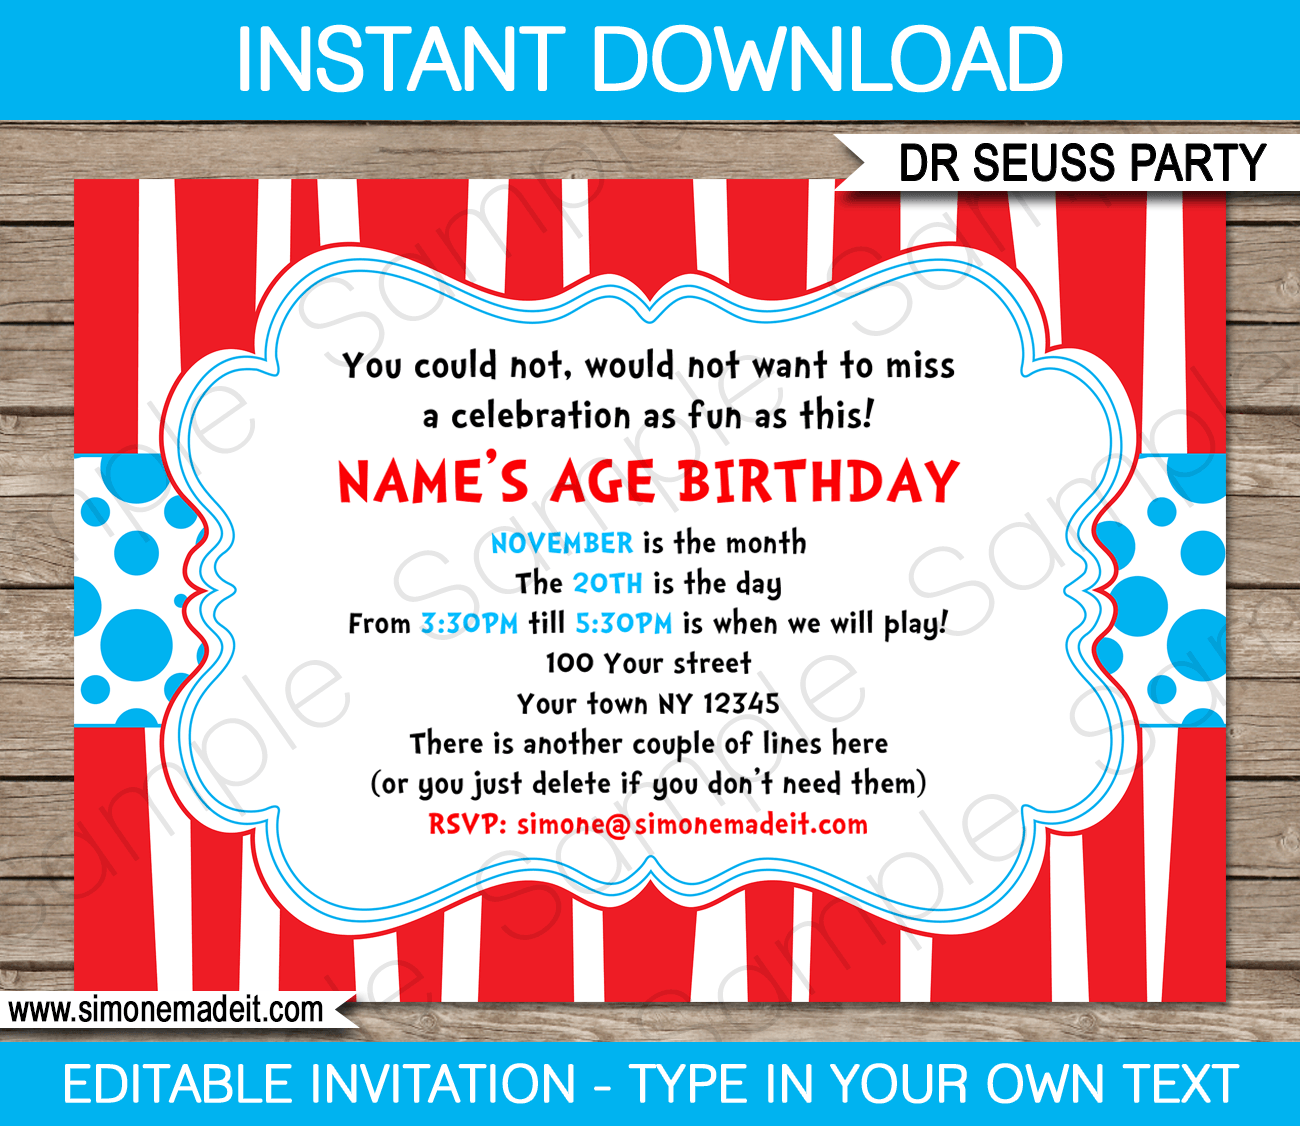 Dr seuss party invitations birthday party template dr seuss party invitations birthday party editable diy theme template instant download 750 stopboris